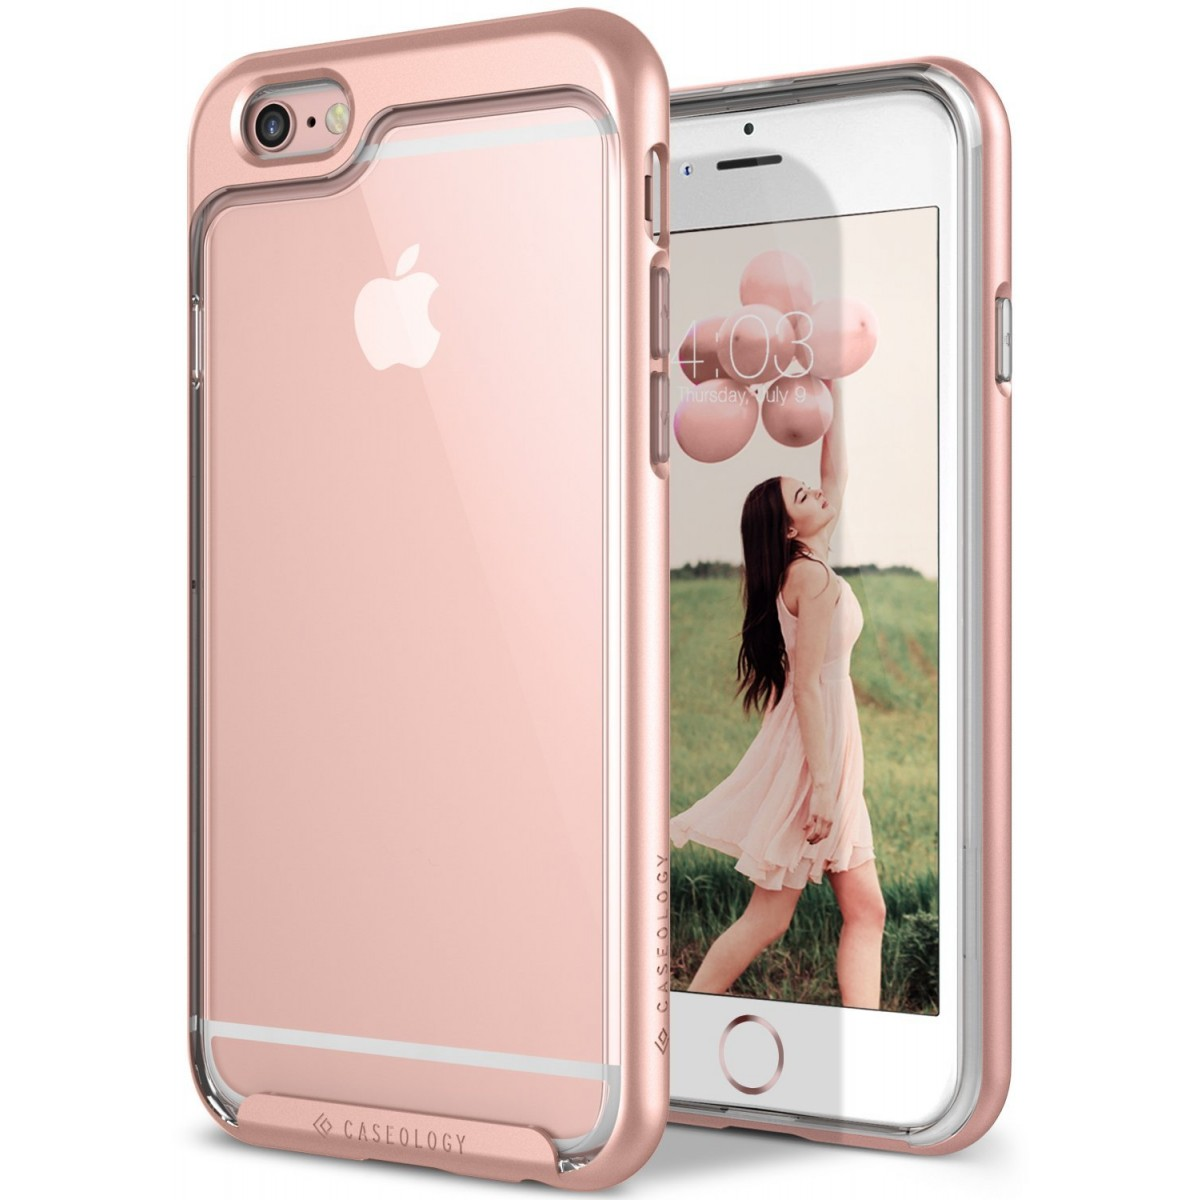 size 40 9746e 9fd1c Caseology [Skyfall Series] Case for iPhone 6 / iPhone 6S - Slim Design  Clear Transparent Protective Scratch Resistant Air Space Cushion Cover -  (Rose ...